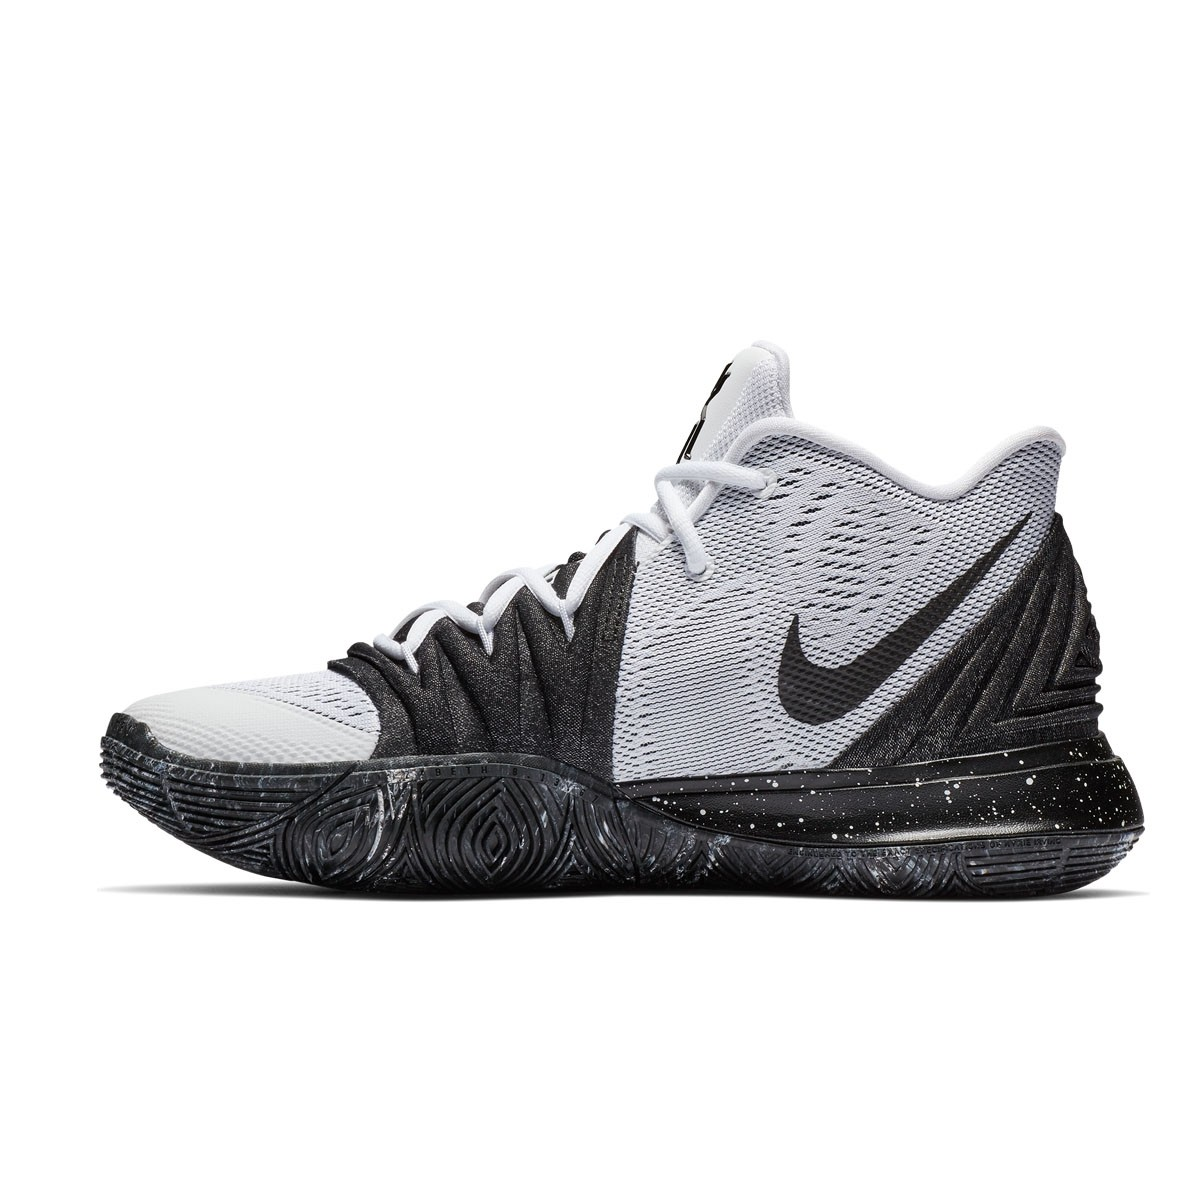 Comprar Nike Kyrie 5 'Cookies And Cream' AO2918-100